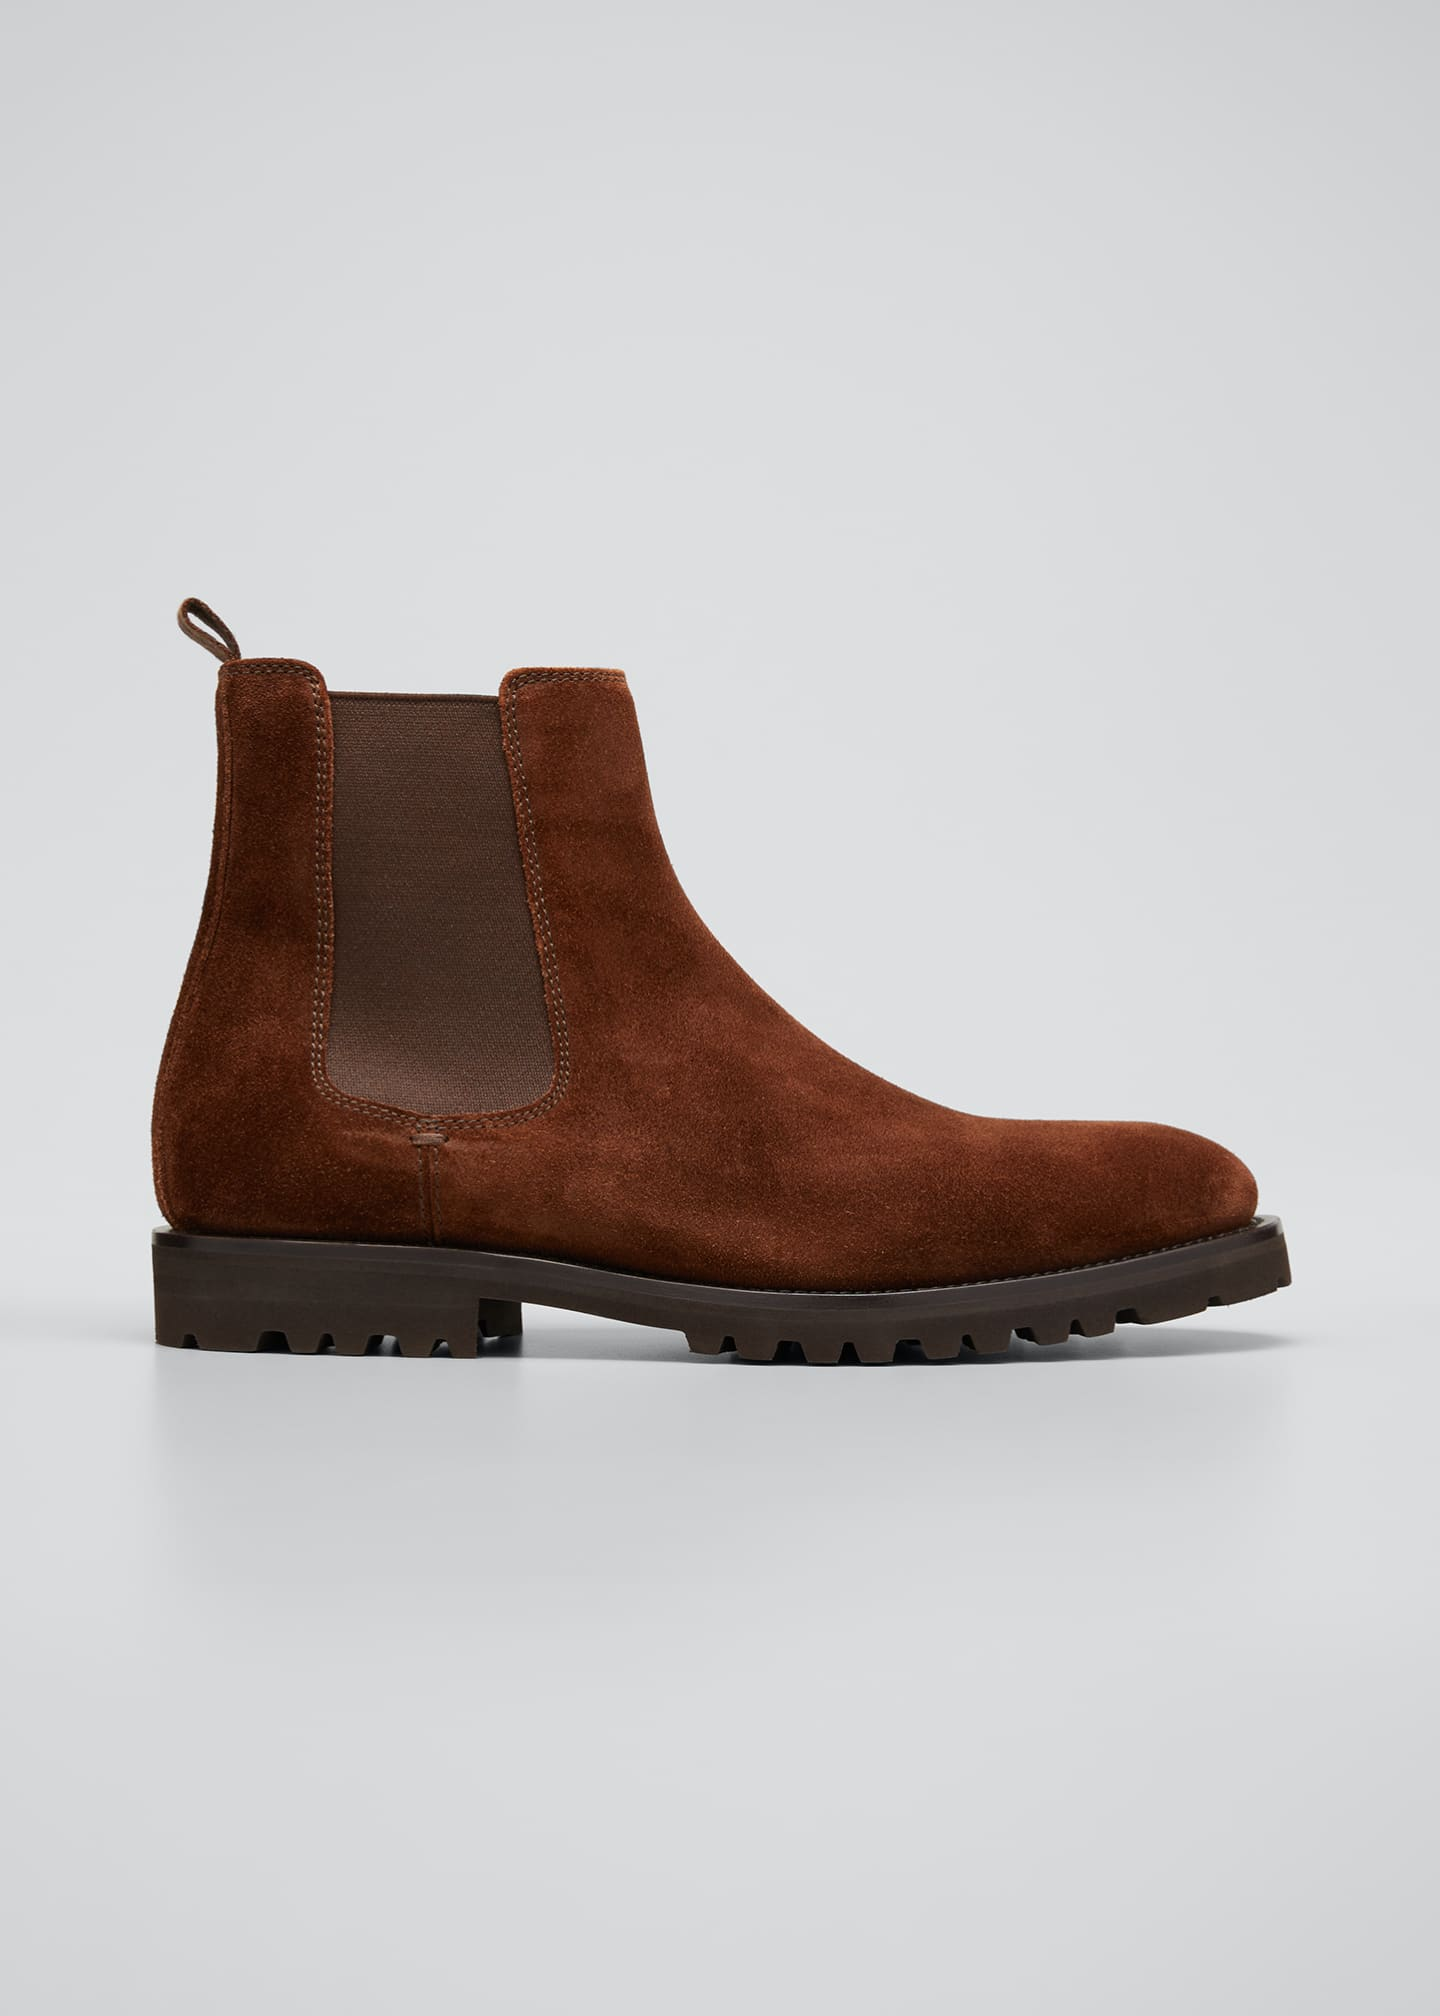 Image 1 of 3: Men's Suede Chelsea Boots